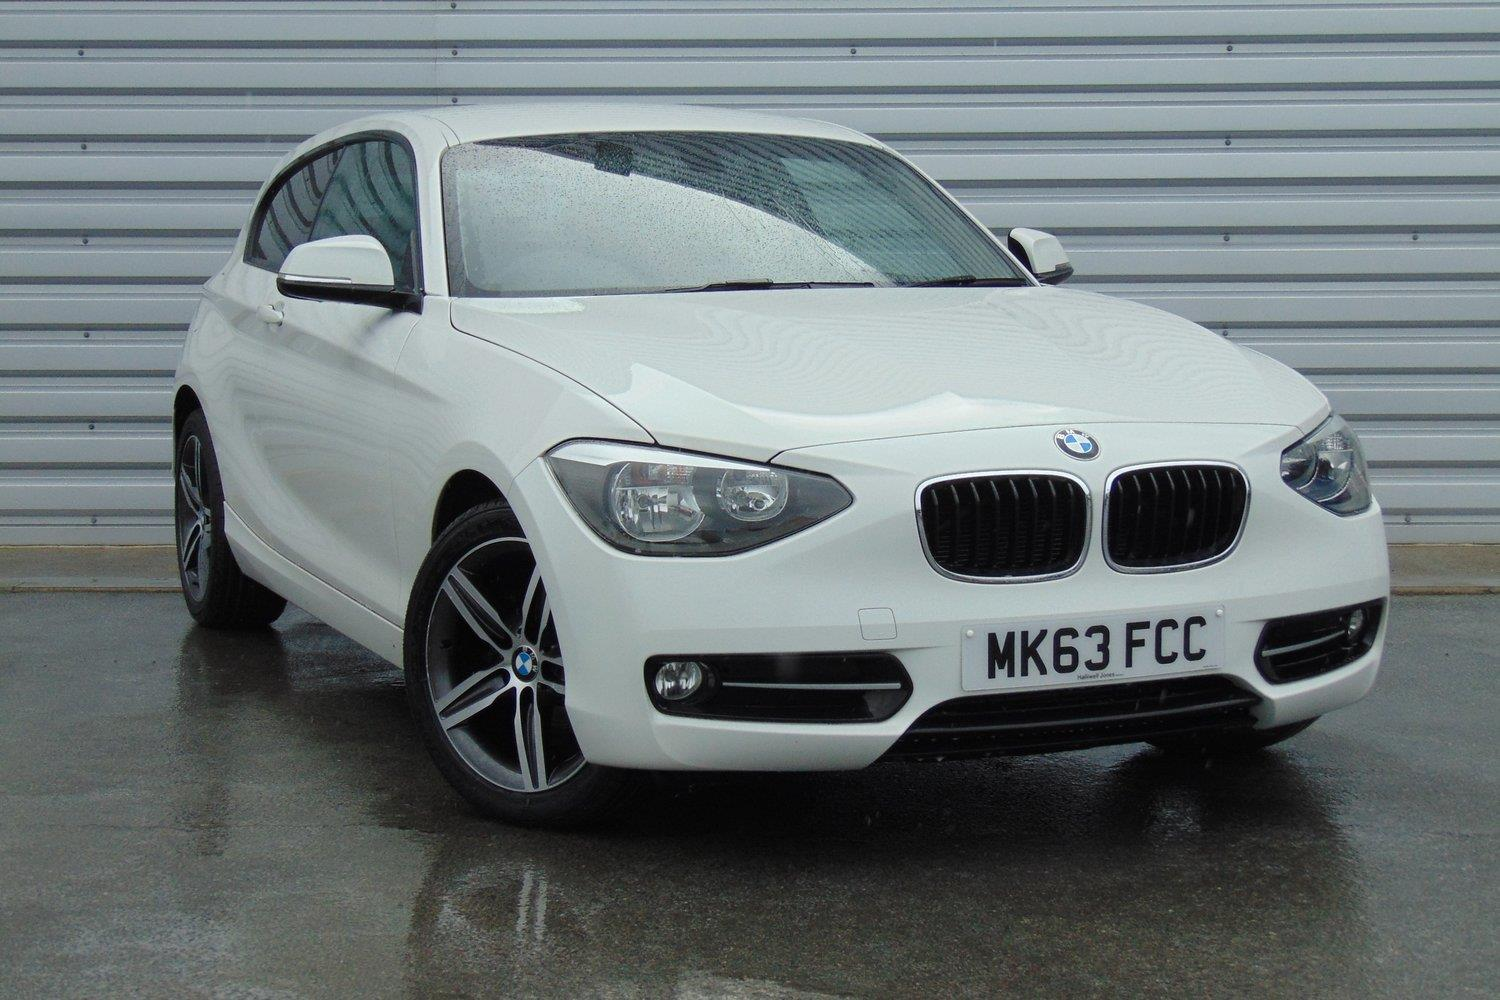 BMW 1 Series 3-door Sports Hatch MK63FCC - Image 7